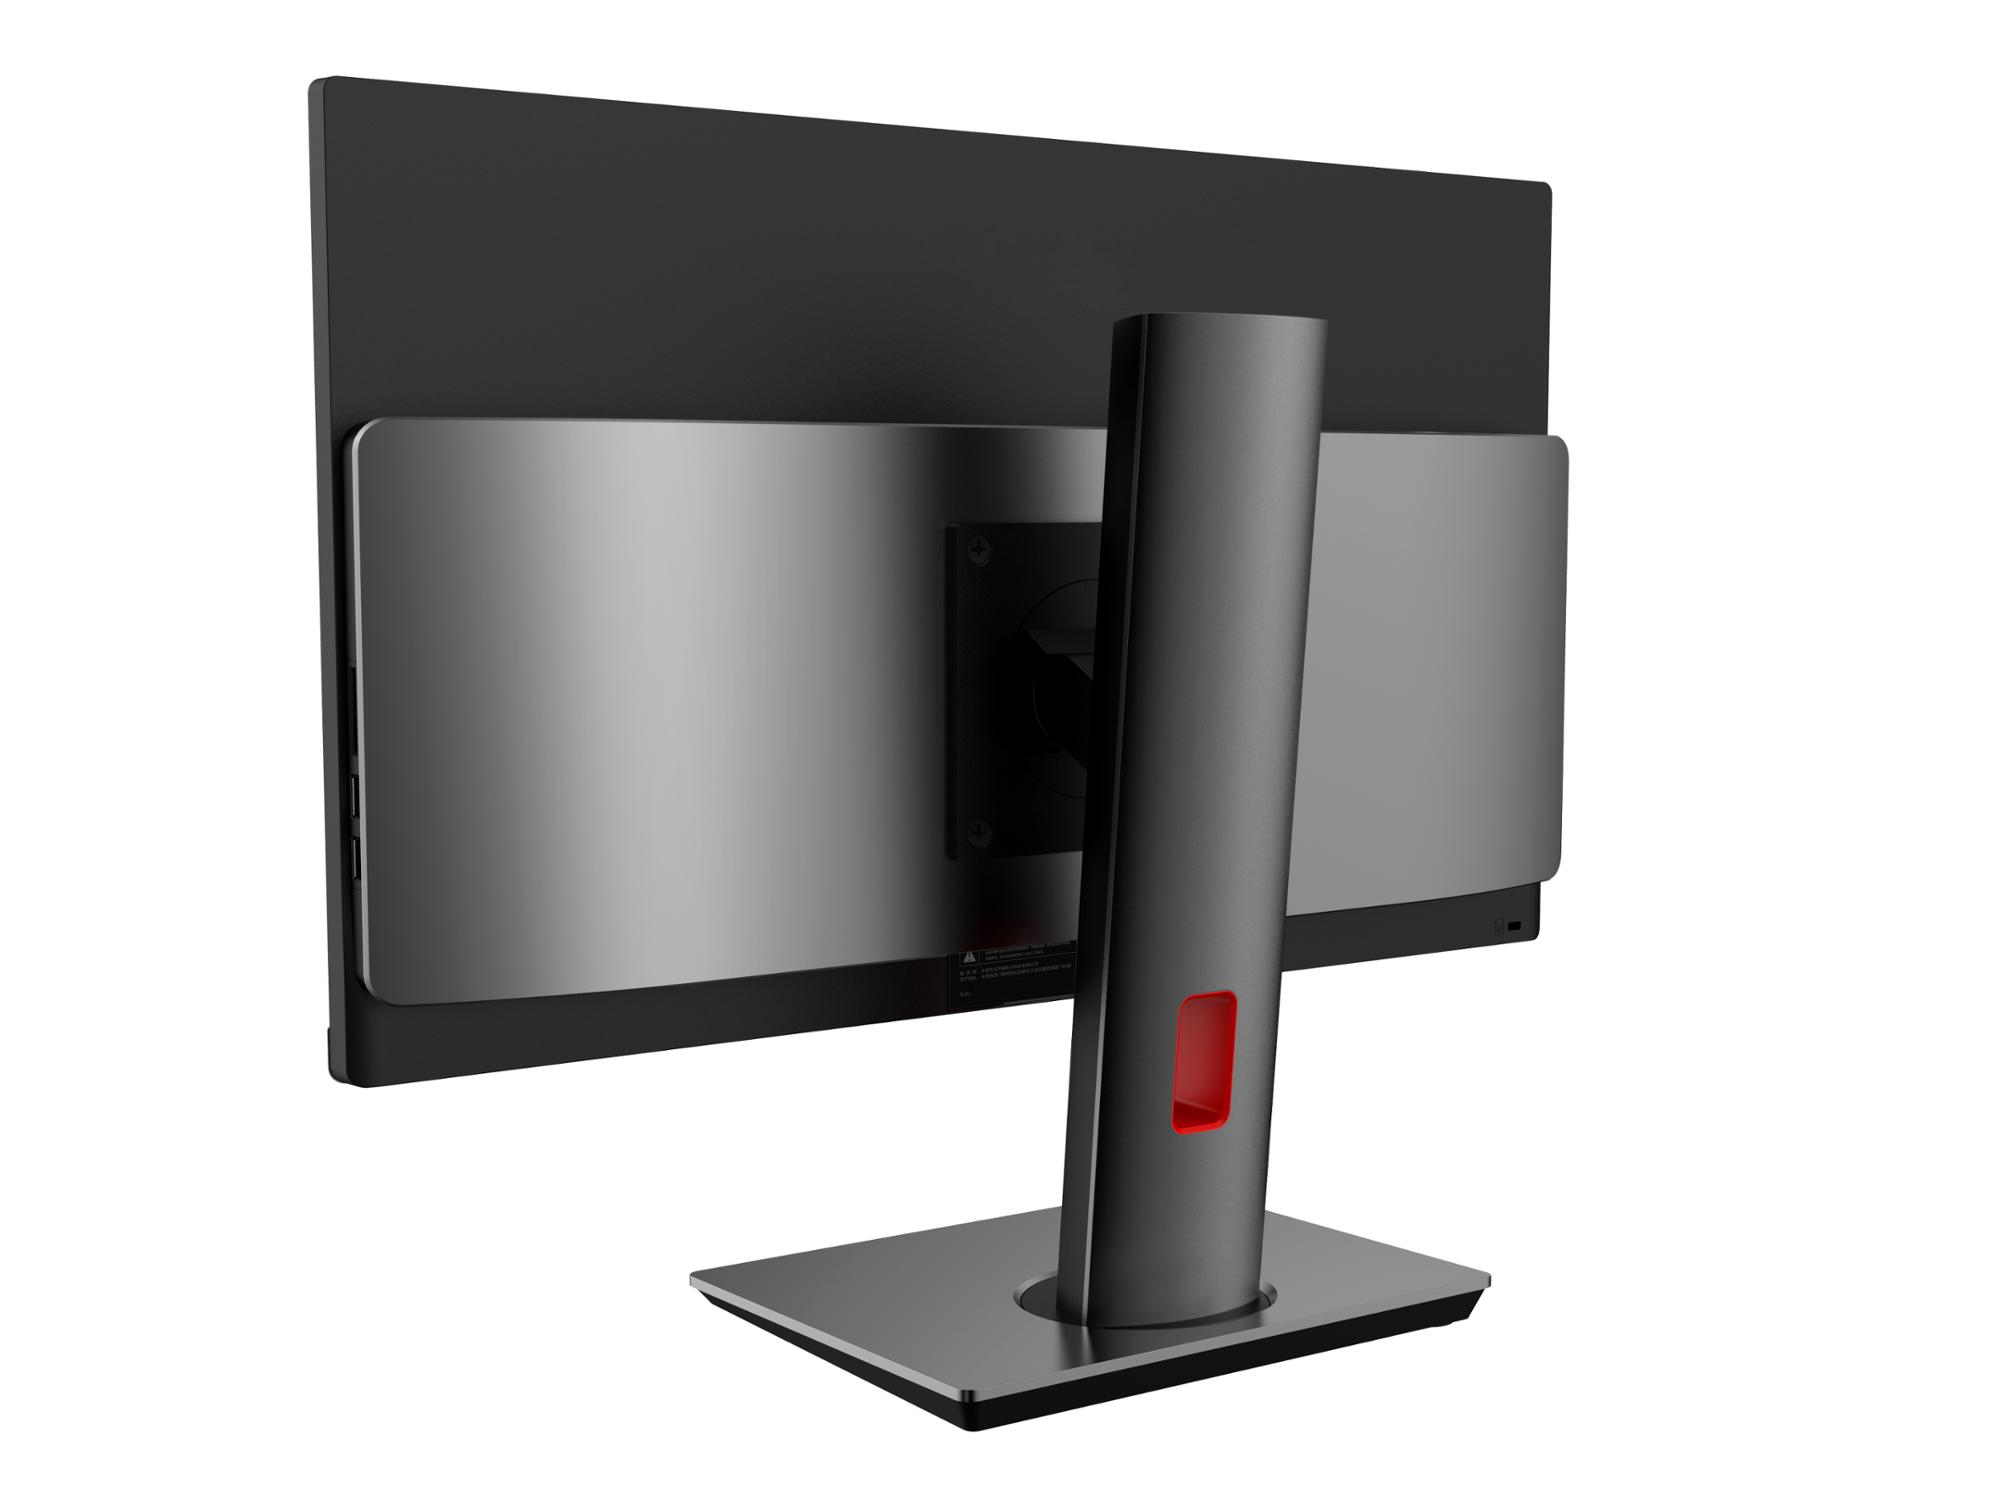 24 inch monoblock in a set with a stand of desktop execution the use of specialized monoblock bracket for mounting the system